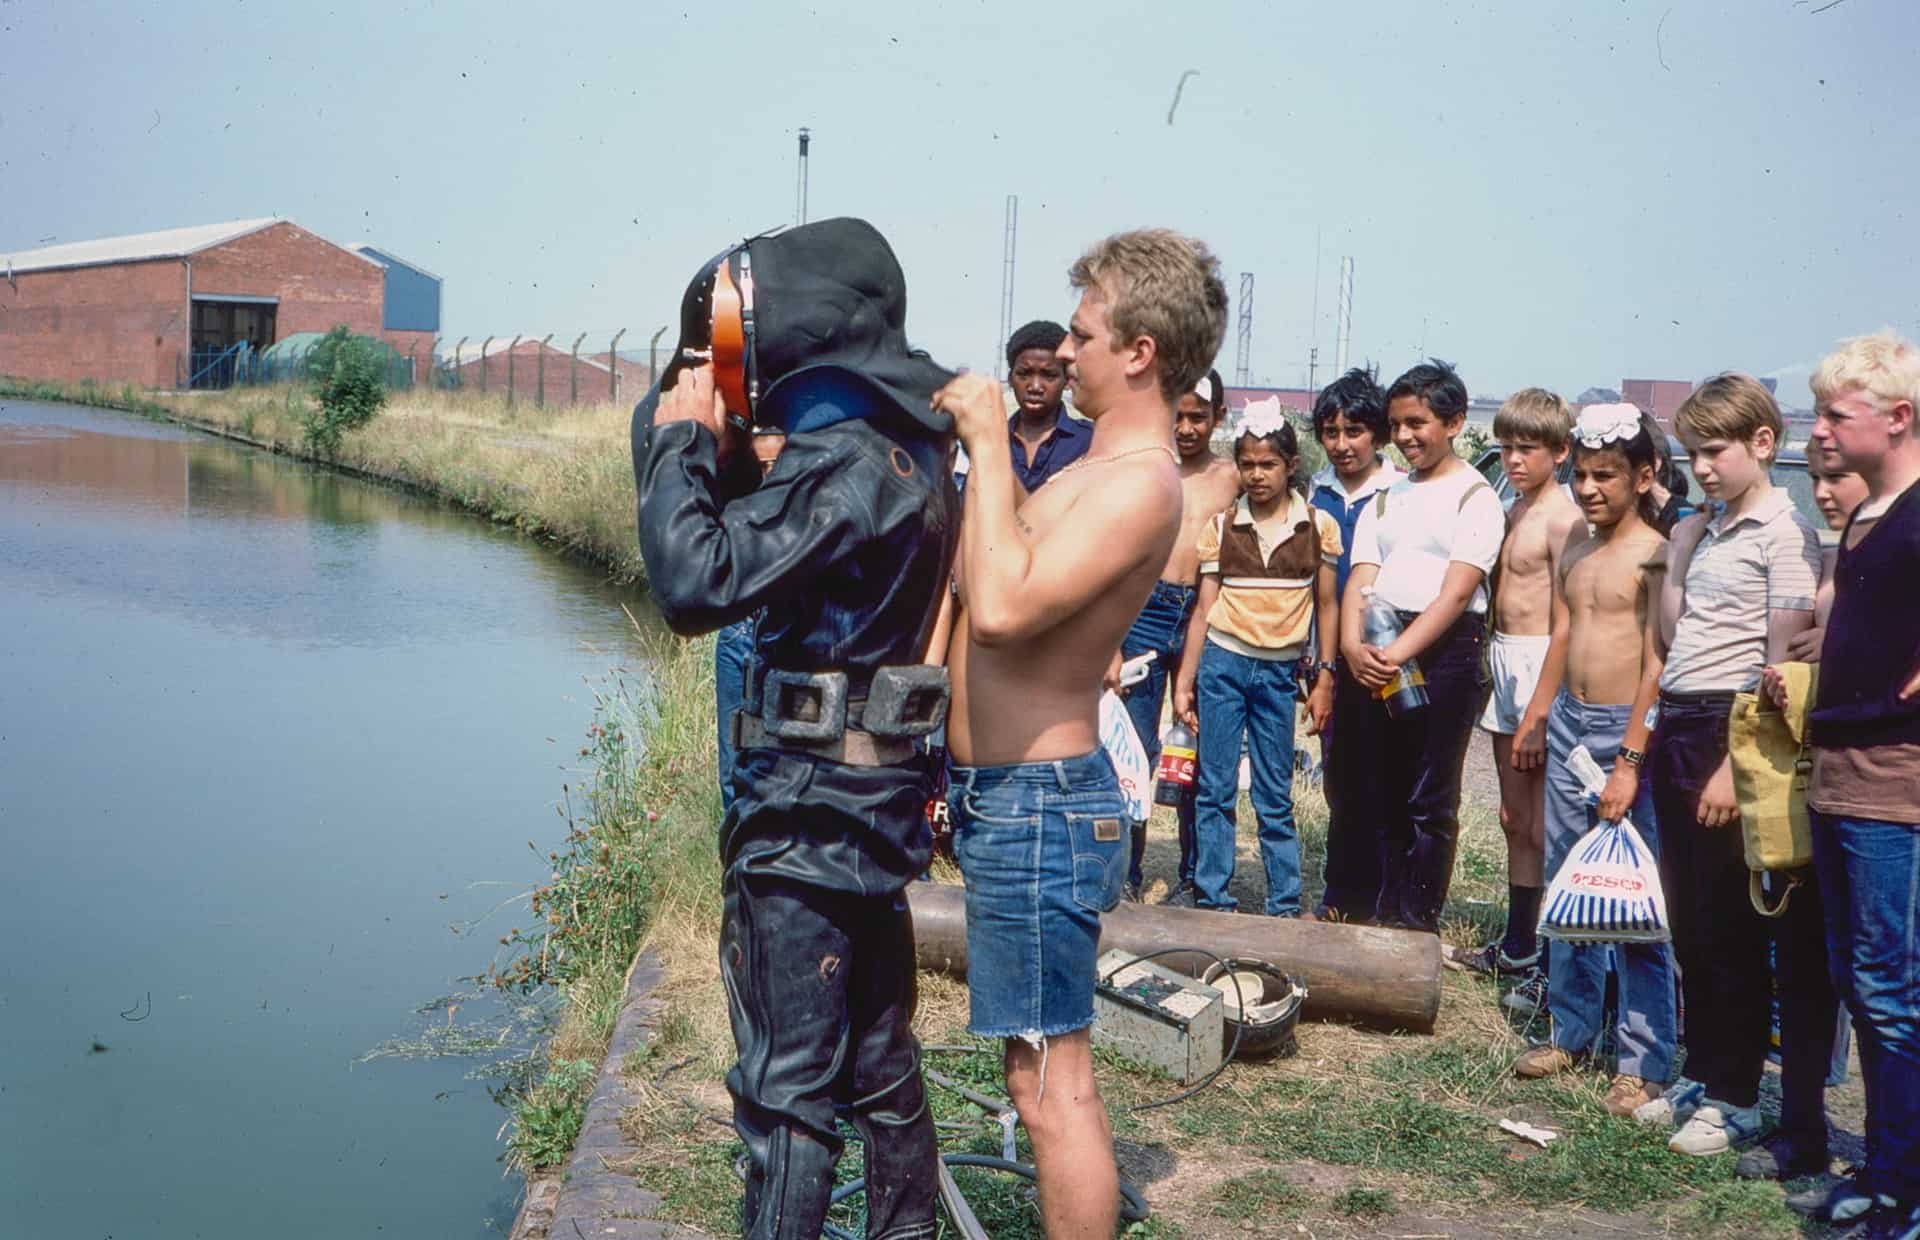 Smethwick Hall High School boys meet diver at Tividale. 1980s